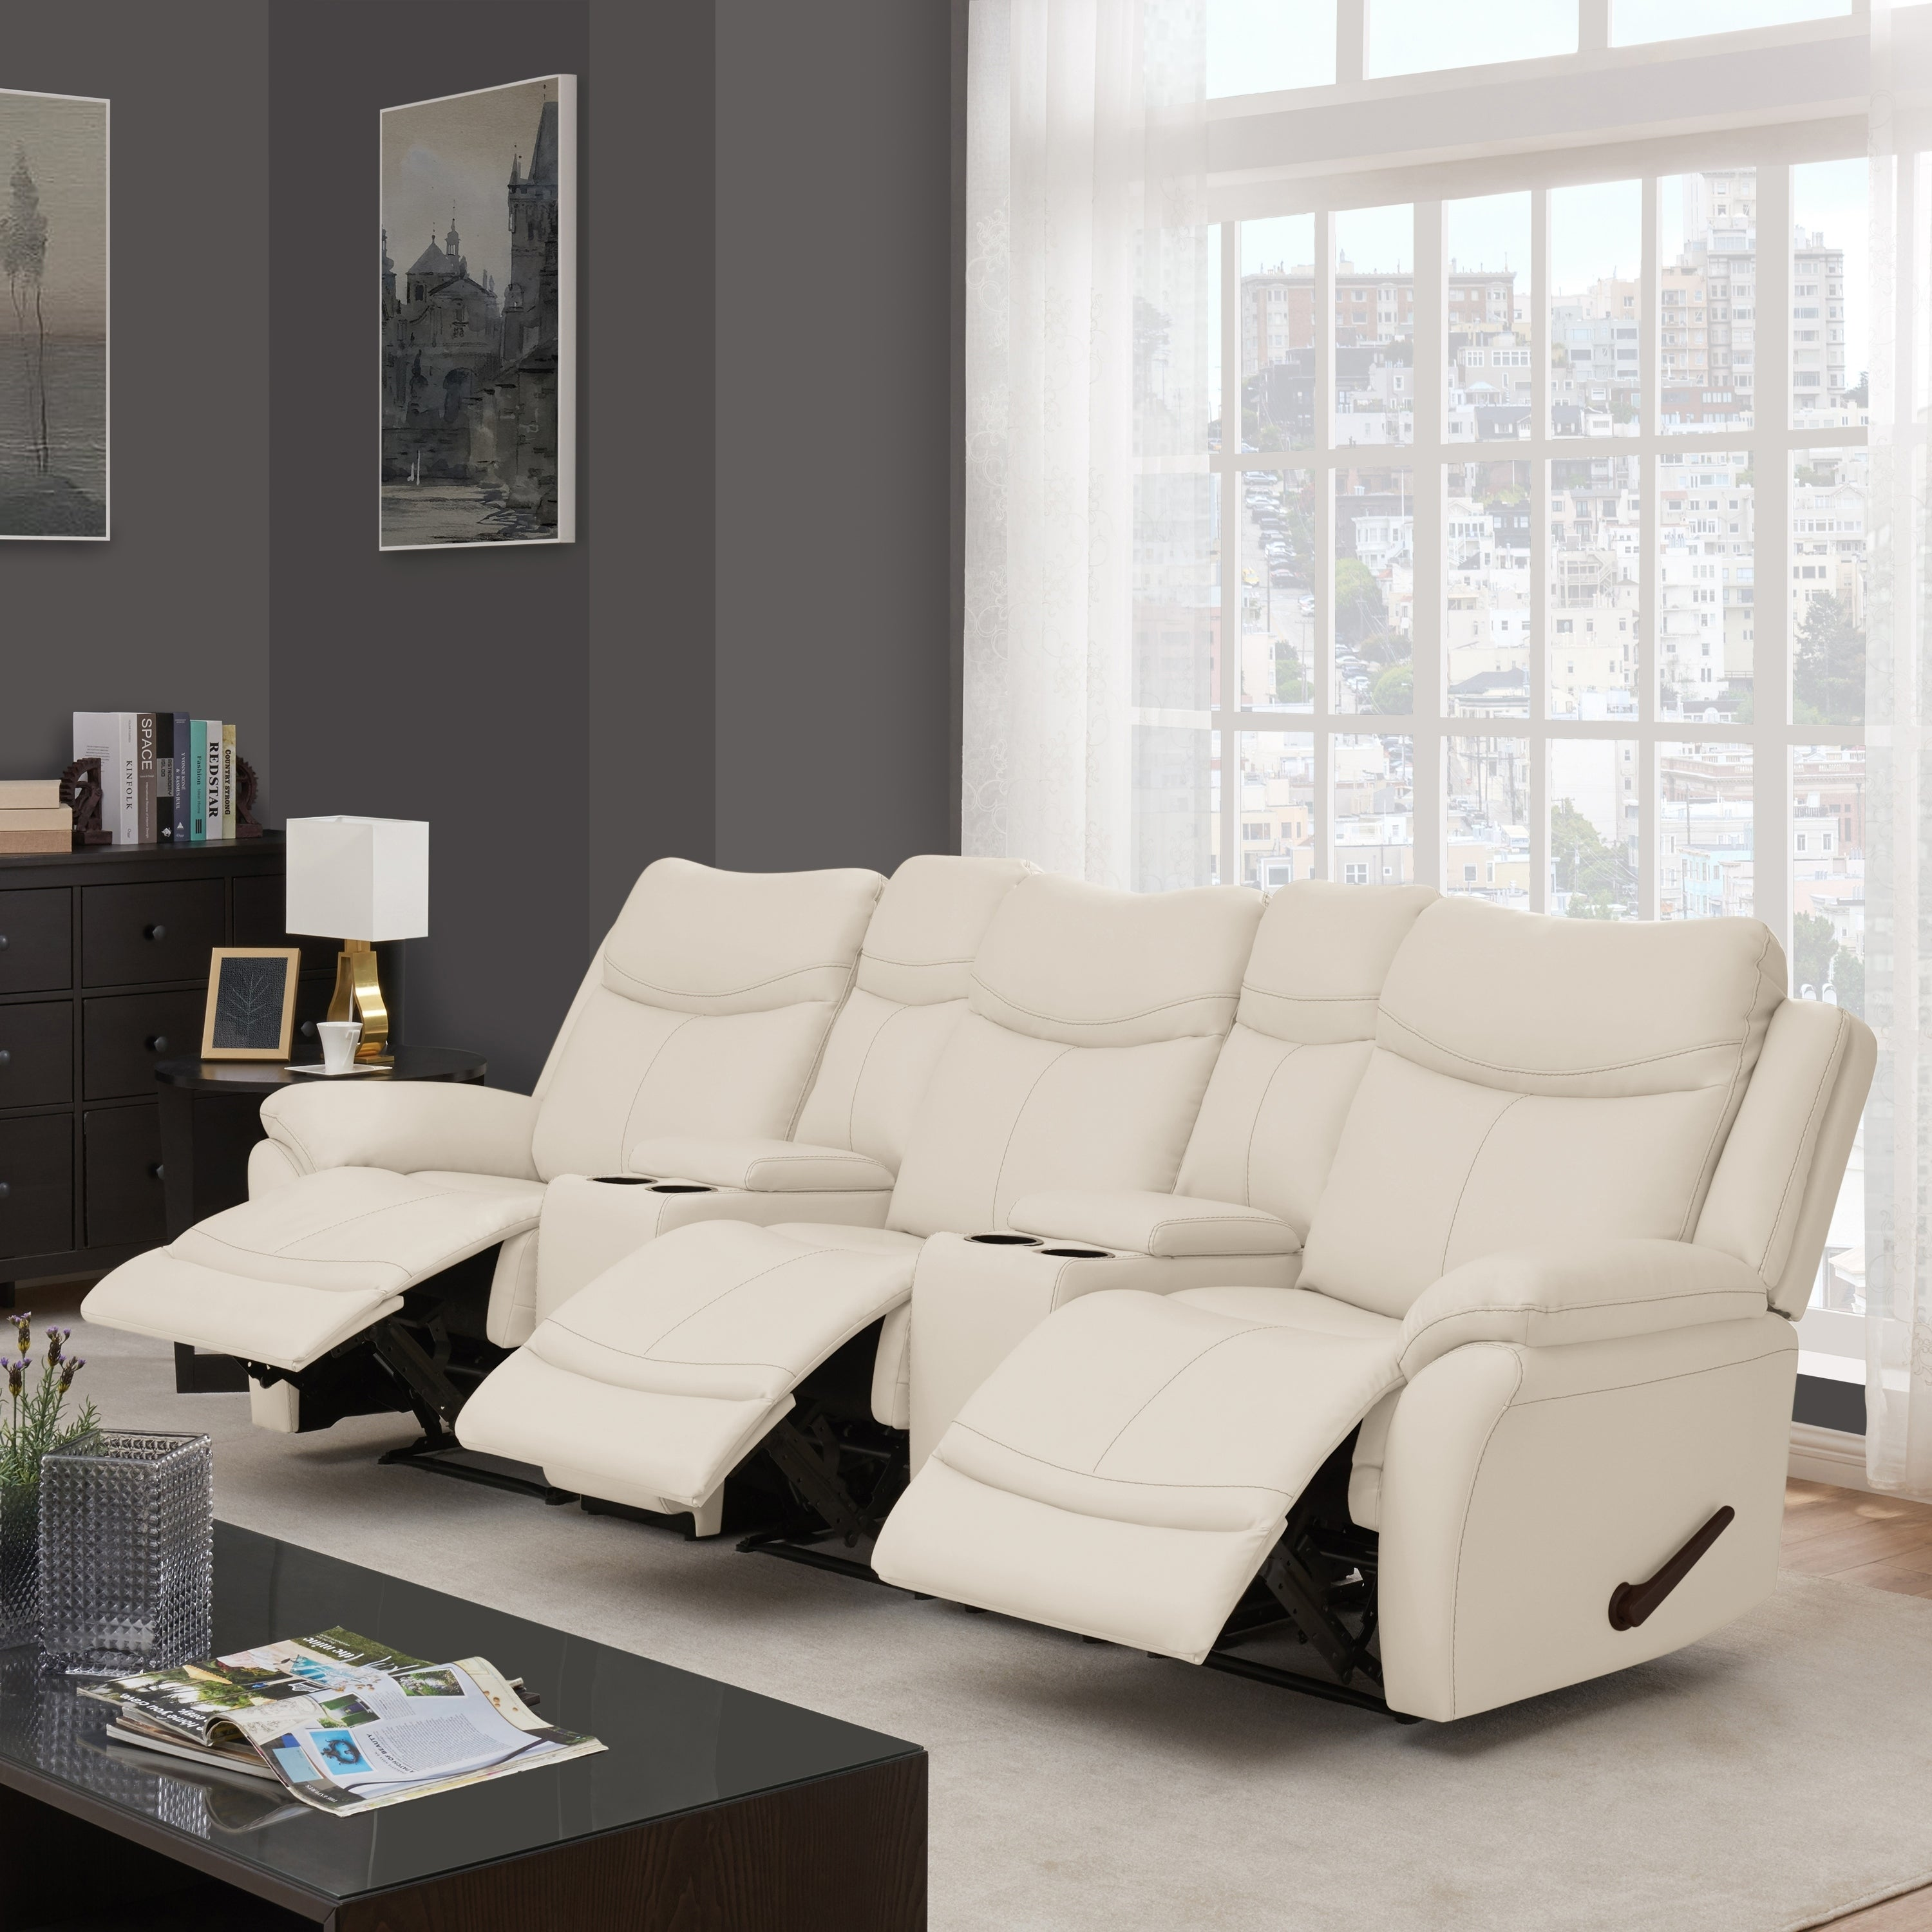 Copper Grove Peqin 3-seat Faux Leather Recliner Sofa with Power Storage  Console